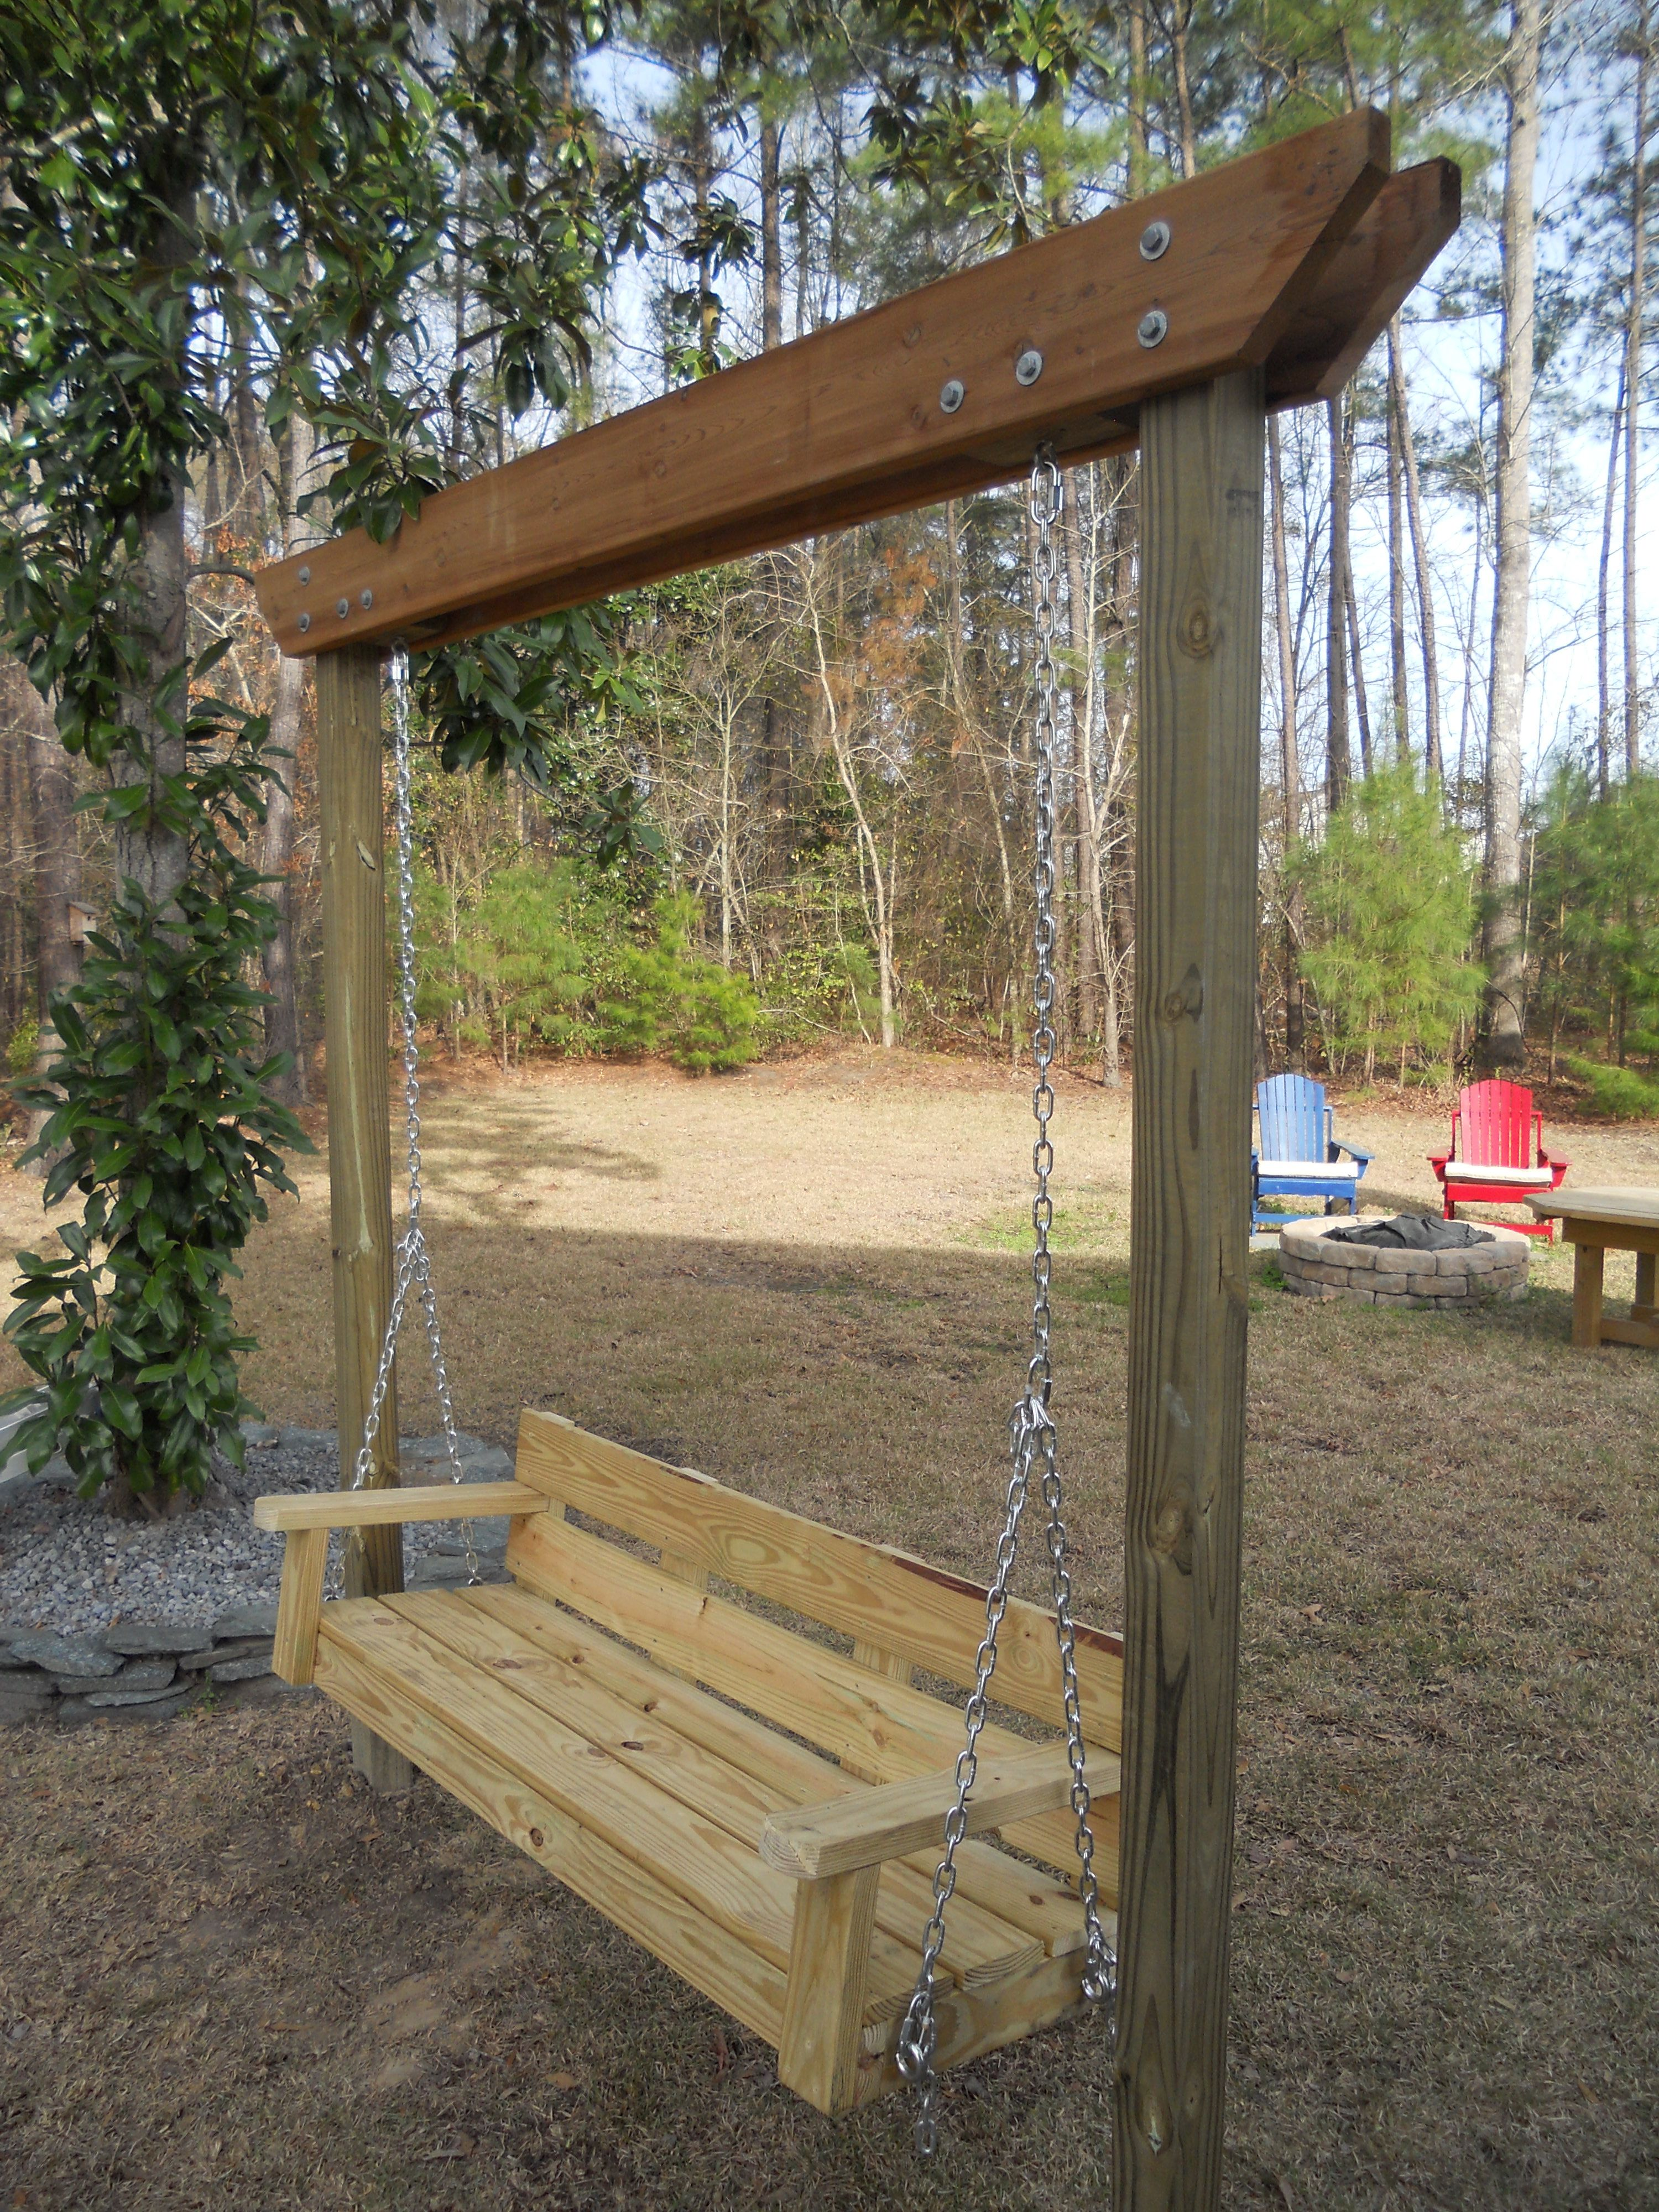 OneDay Garden And Backyard Projects Anyone Can Do Bench swing